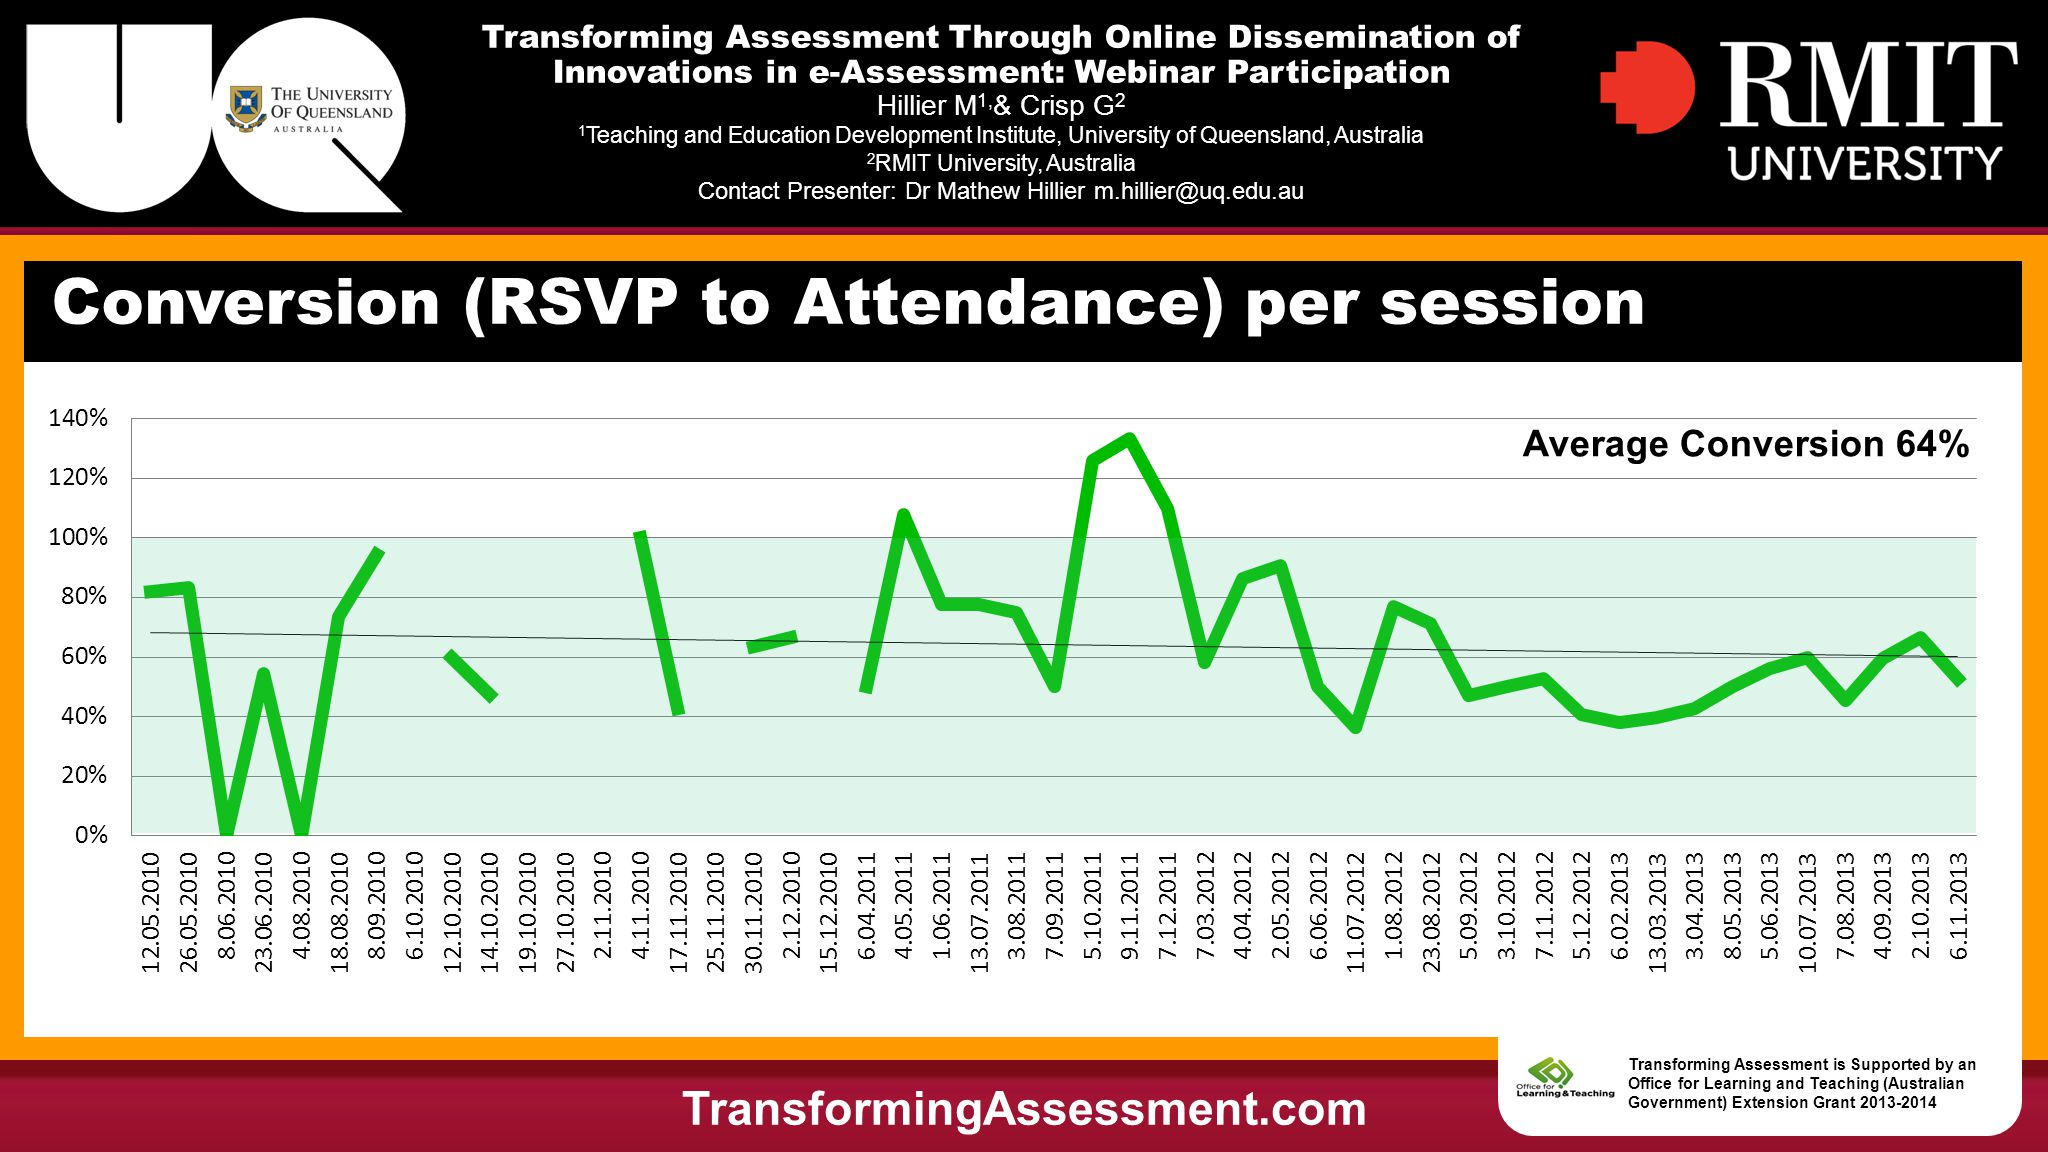 Transforming Assessment Through Online Dissemination of Innovations in e-Assessment: Webinar Participation Hillier M 1, & Crisp G 2 1 Teaching and Education Development Institute, University of Queensland, Australia 2 RMIT University, Australia Contact Presenter: Dr Mathew Hillier m.hillier@uq.edu.au Conversion (RSVP to Attendance) per session TransformingAssessment.com Transforming Assessment is Supported by an Office for Learning and Teaching (Australian Government) Extension Grant 2013-2014 Average Conversion 64%